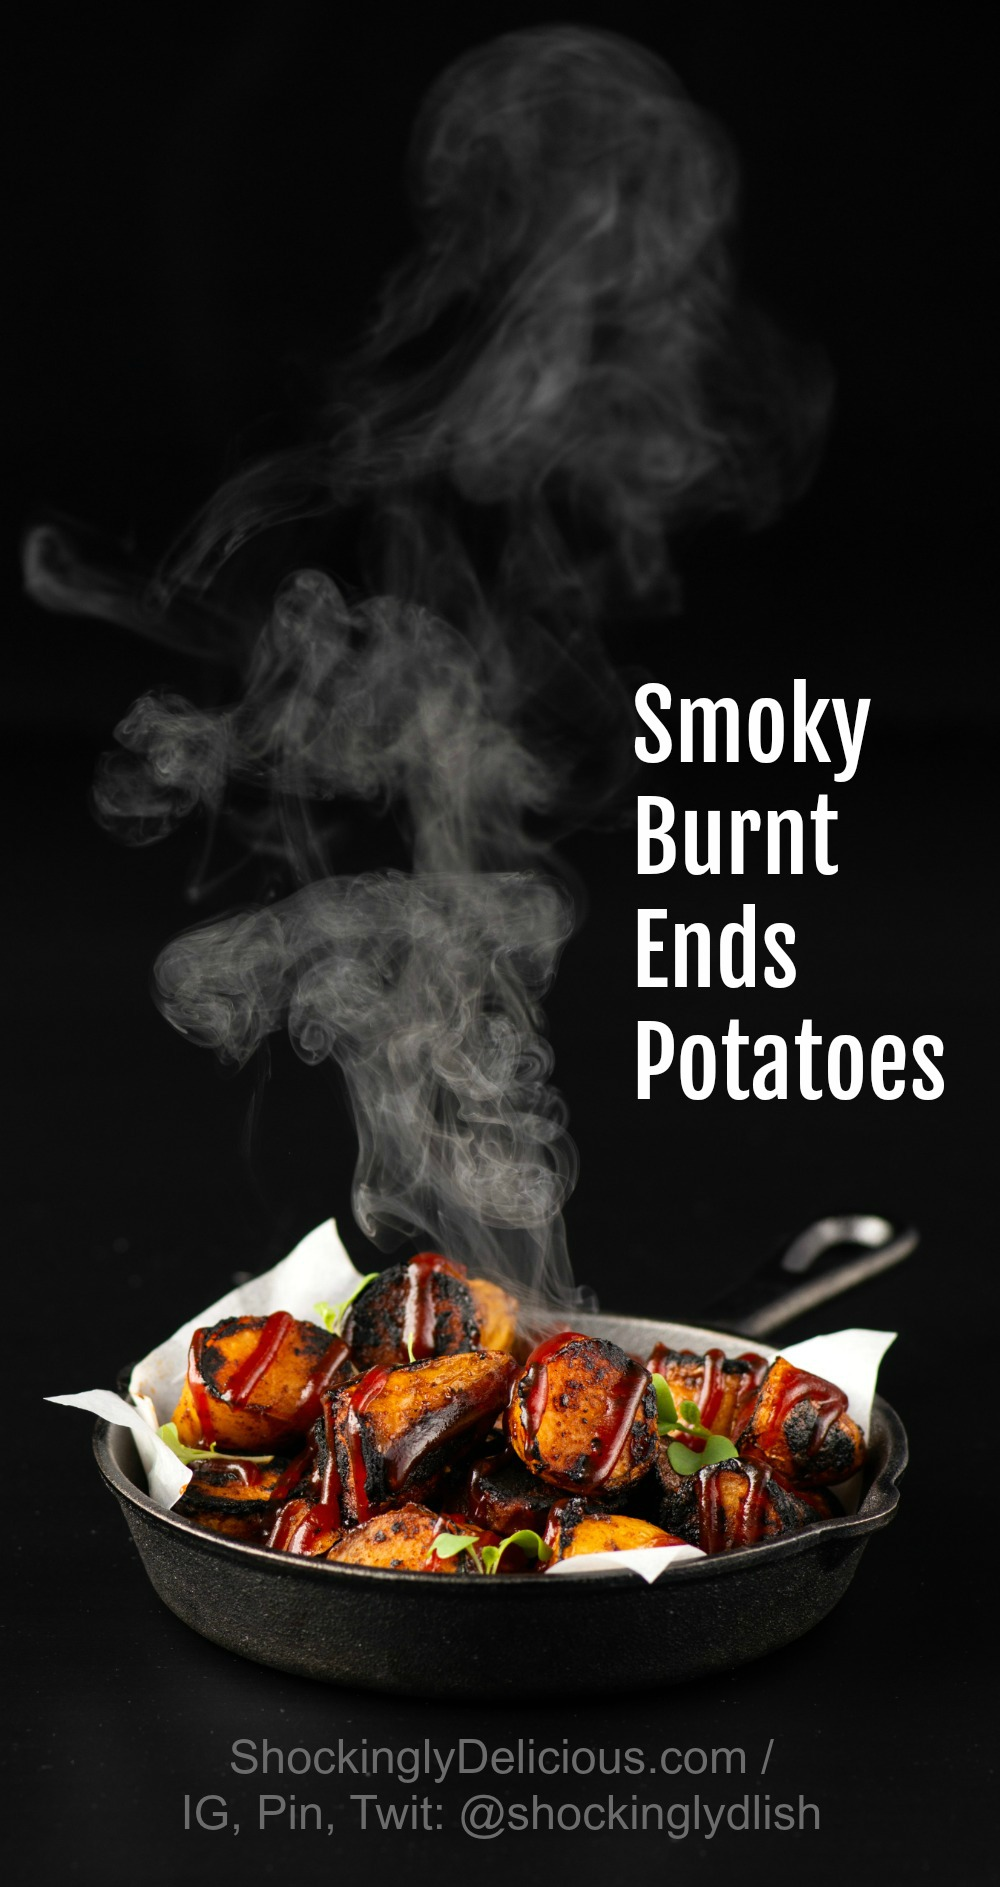 Smoky Burnt Ends Potatoes Pinterest on ShockinglyDelicious.com